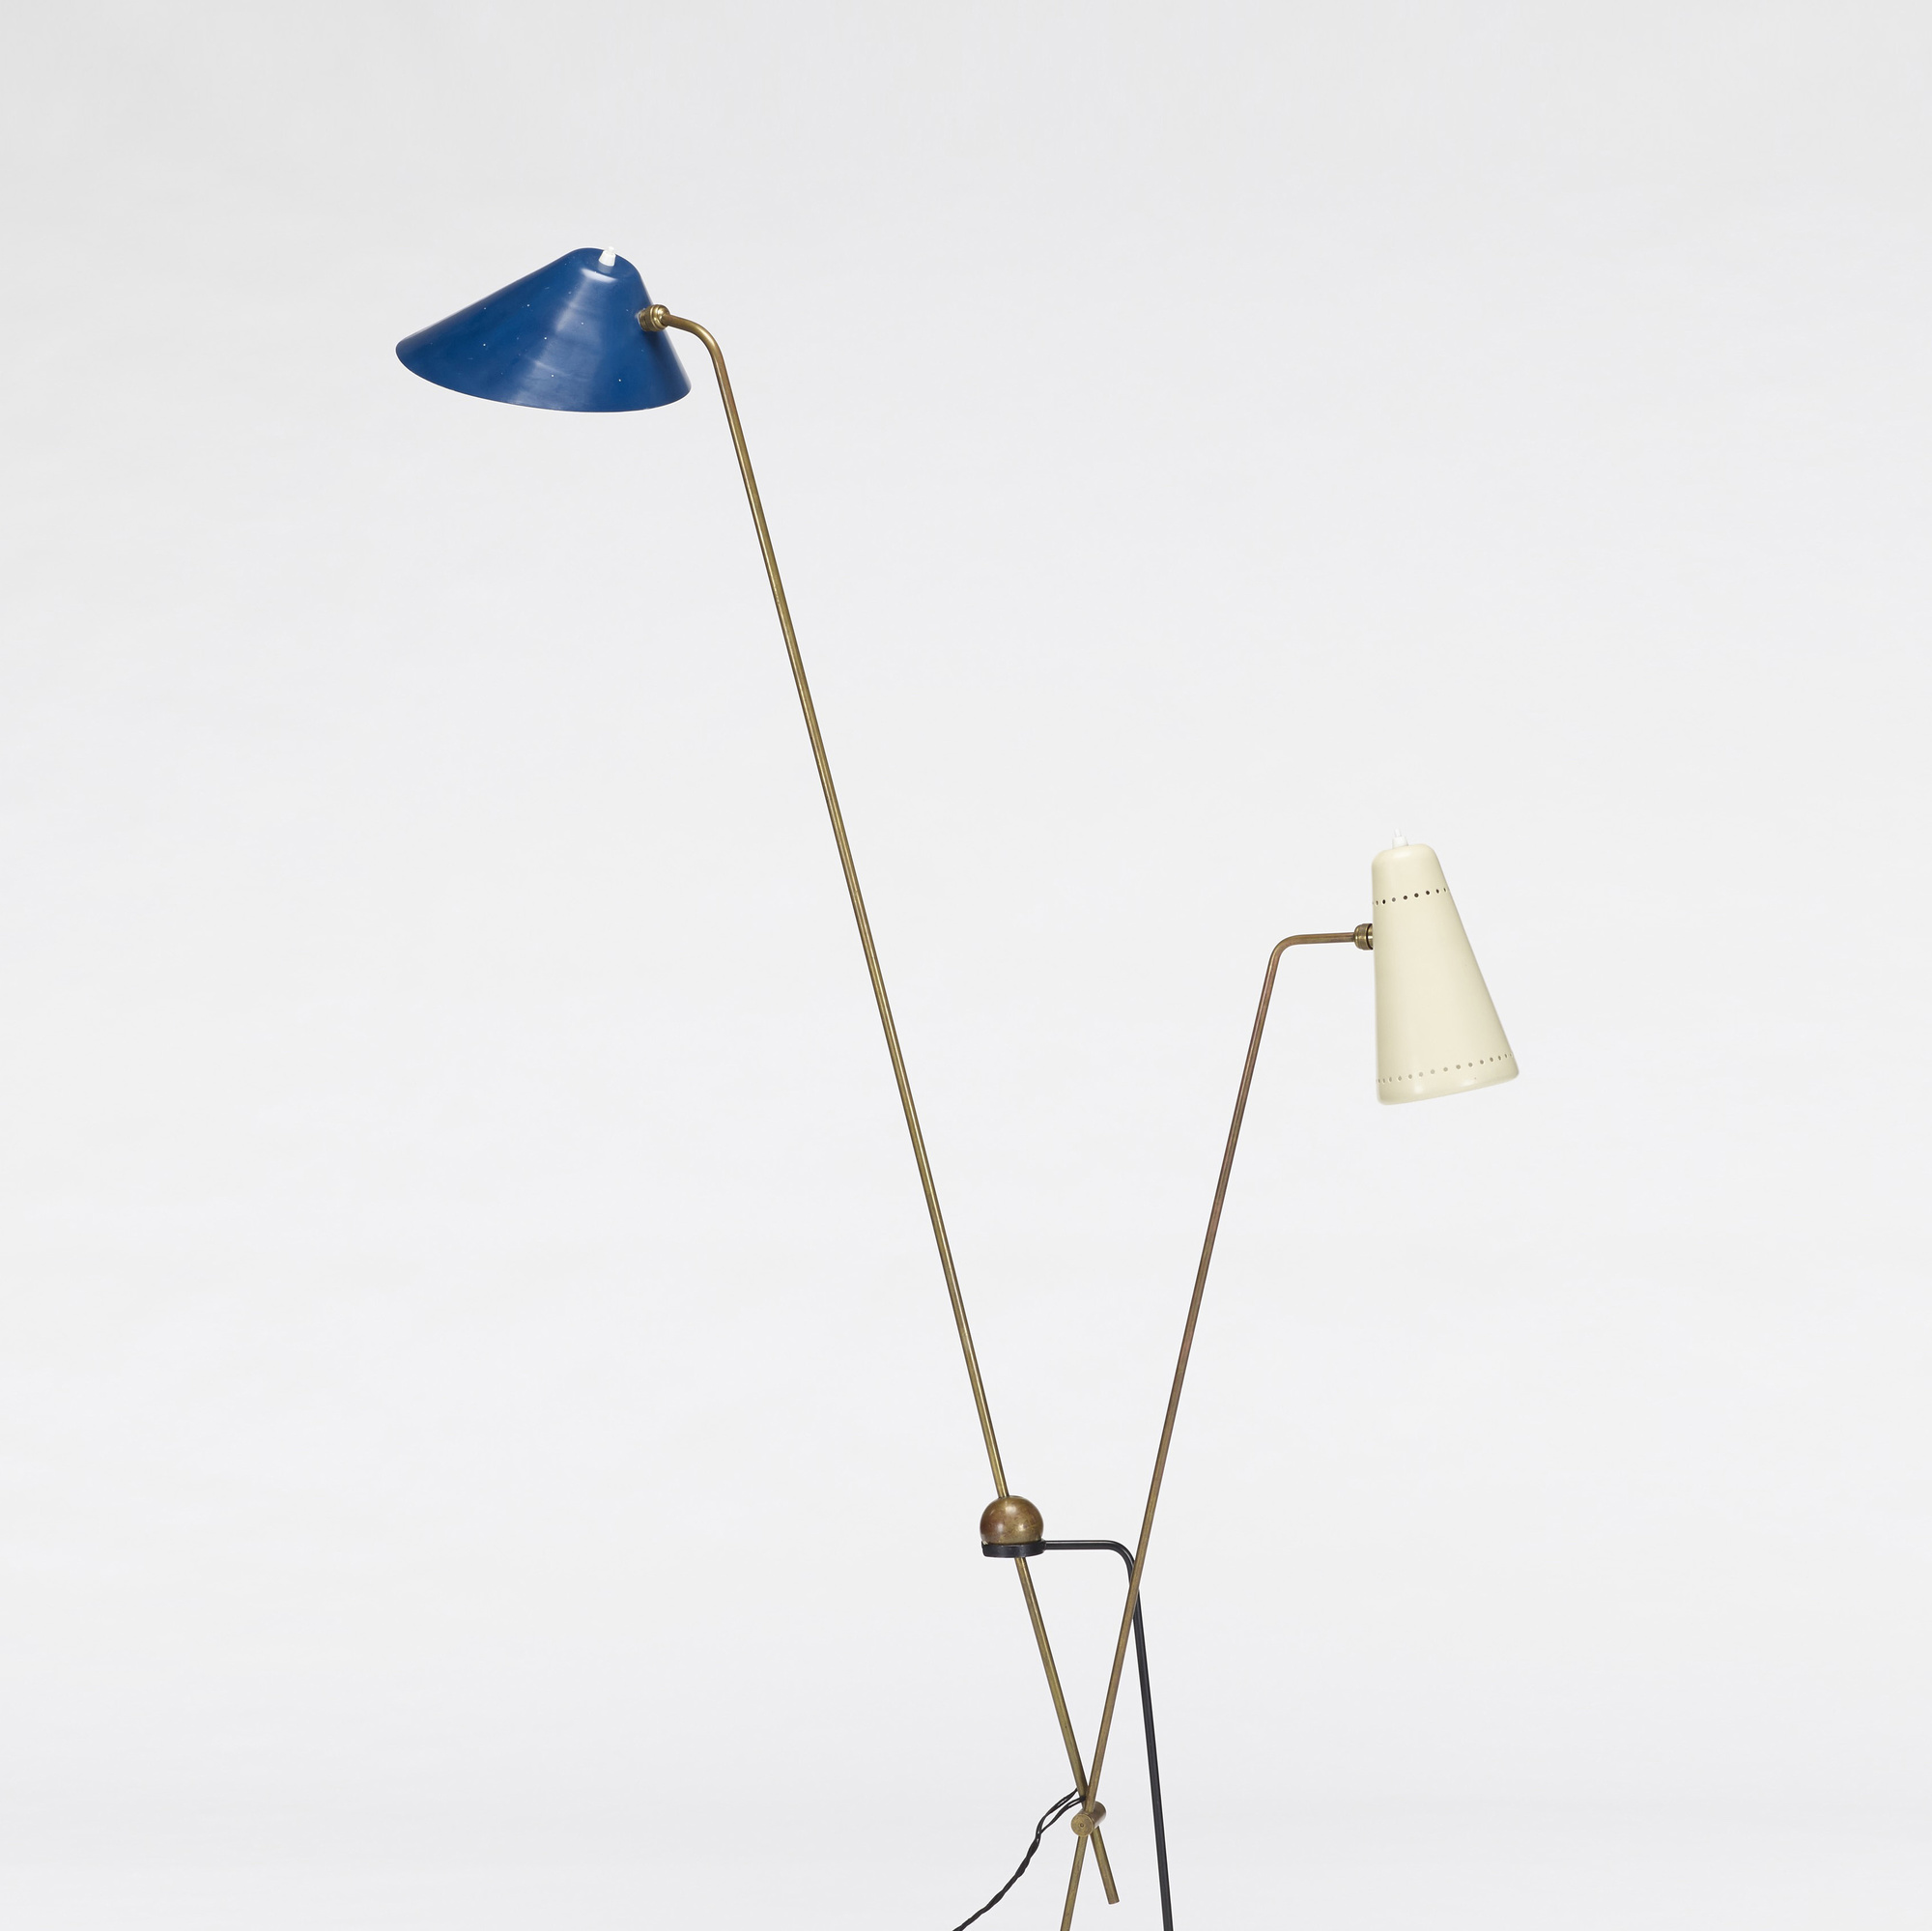 ... 290: Pierre Guariche, Attribution / Equilibrium Double Branch Floor Lamp  (2 Of